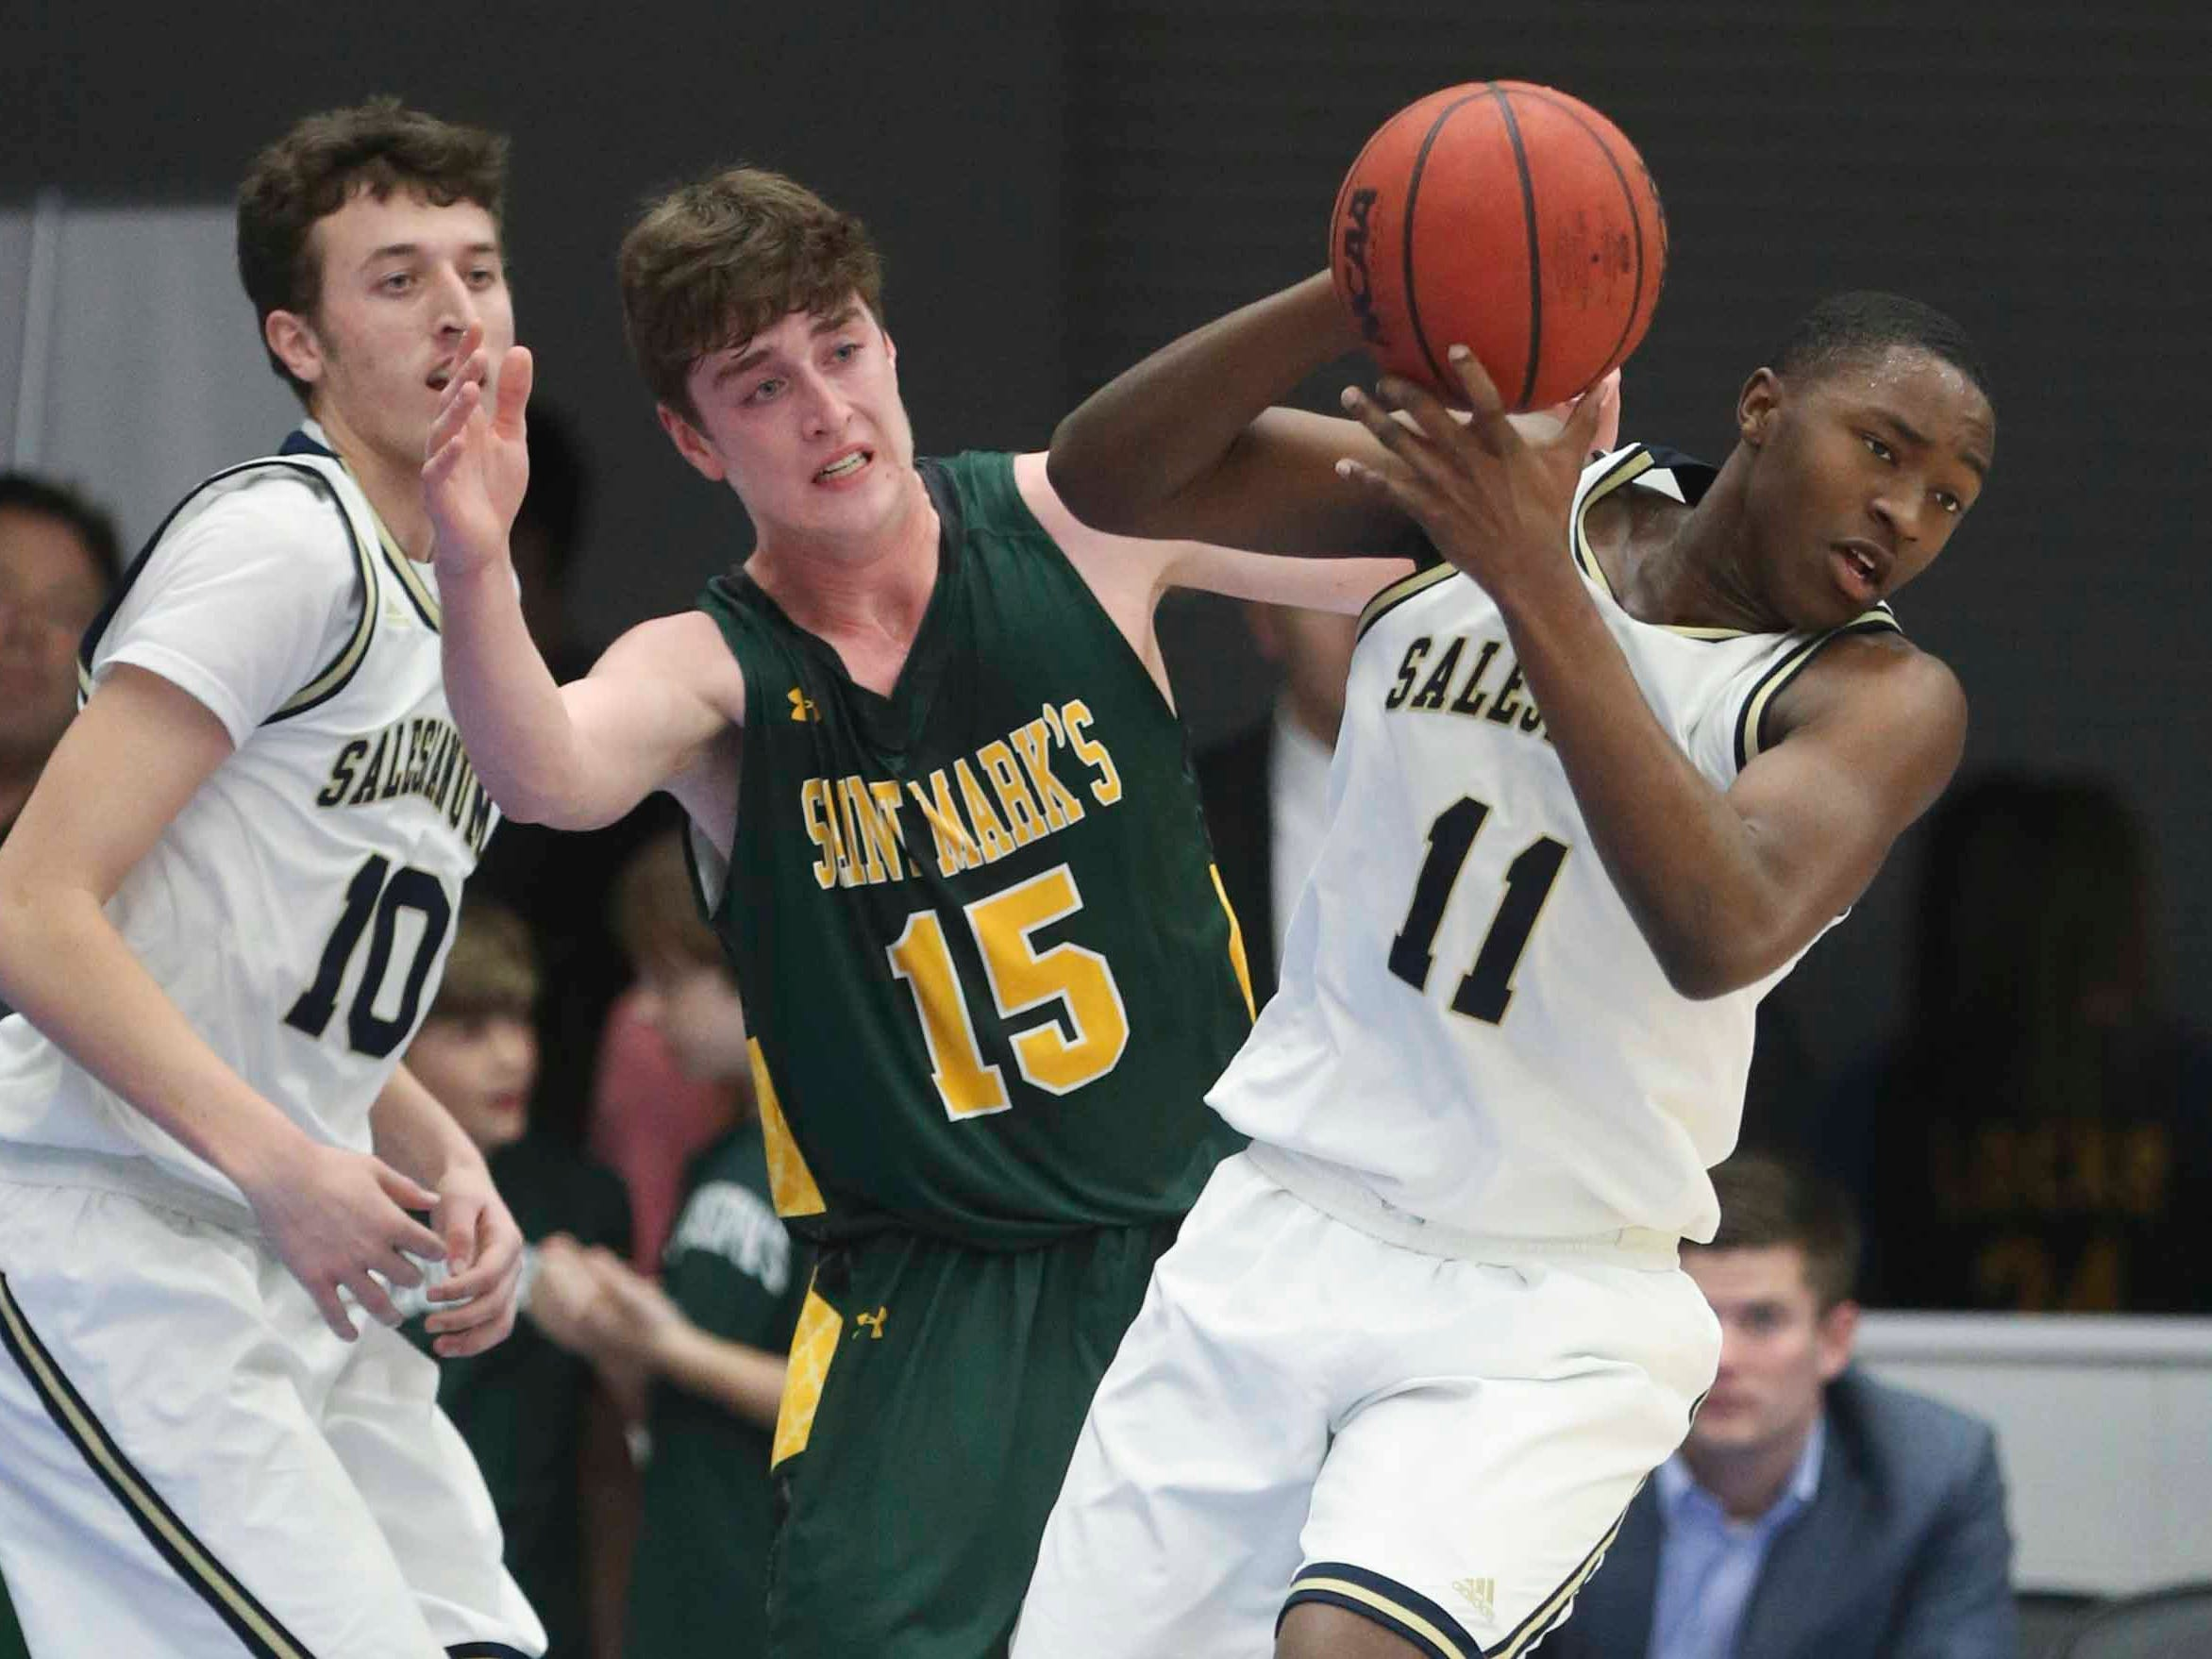 Salesianum's Jack Brown (left) and Darnell Vaughn (11) work against St. Mark's Victor Marcelo in the SL24 Memorial Basketball Classic at the 76ers Fieldhouse in Wilmington Friday.